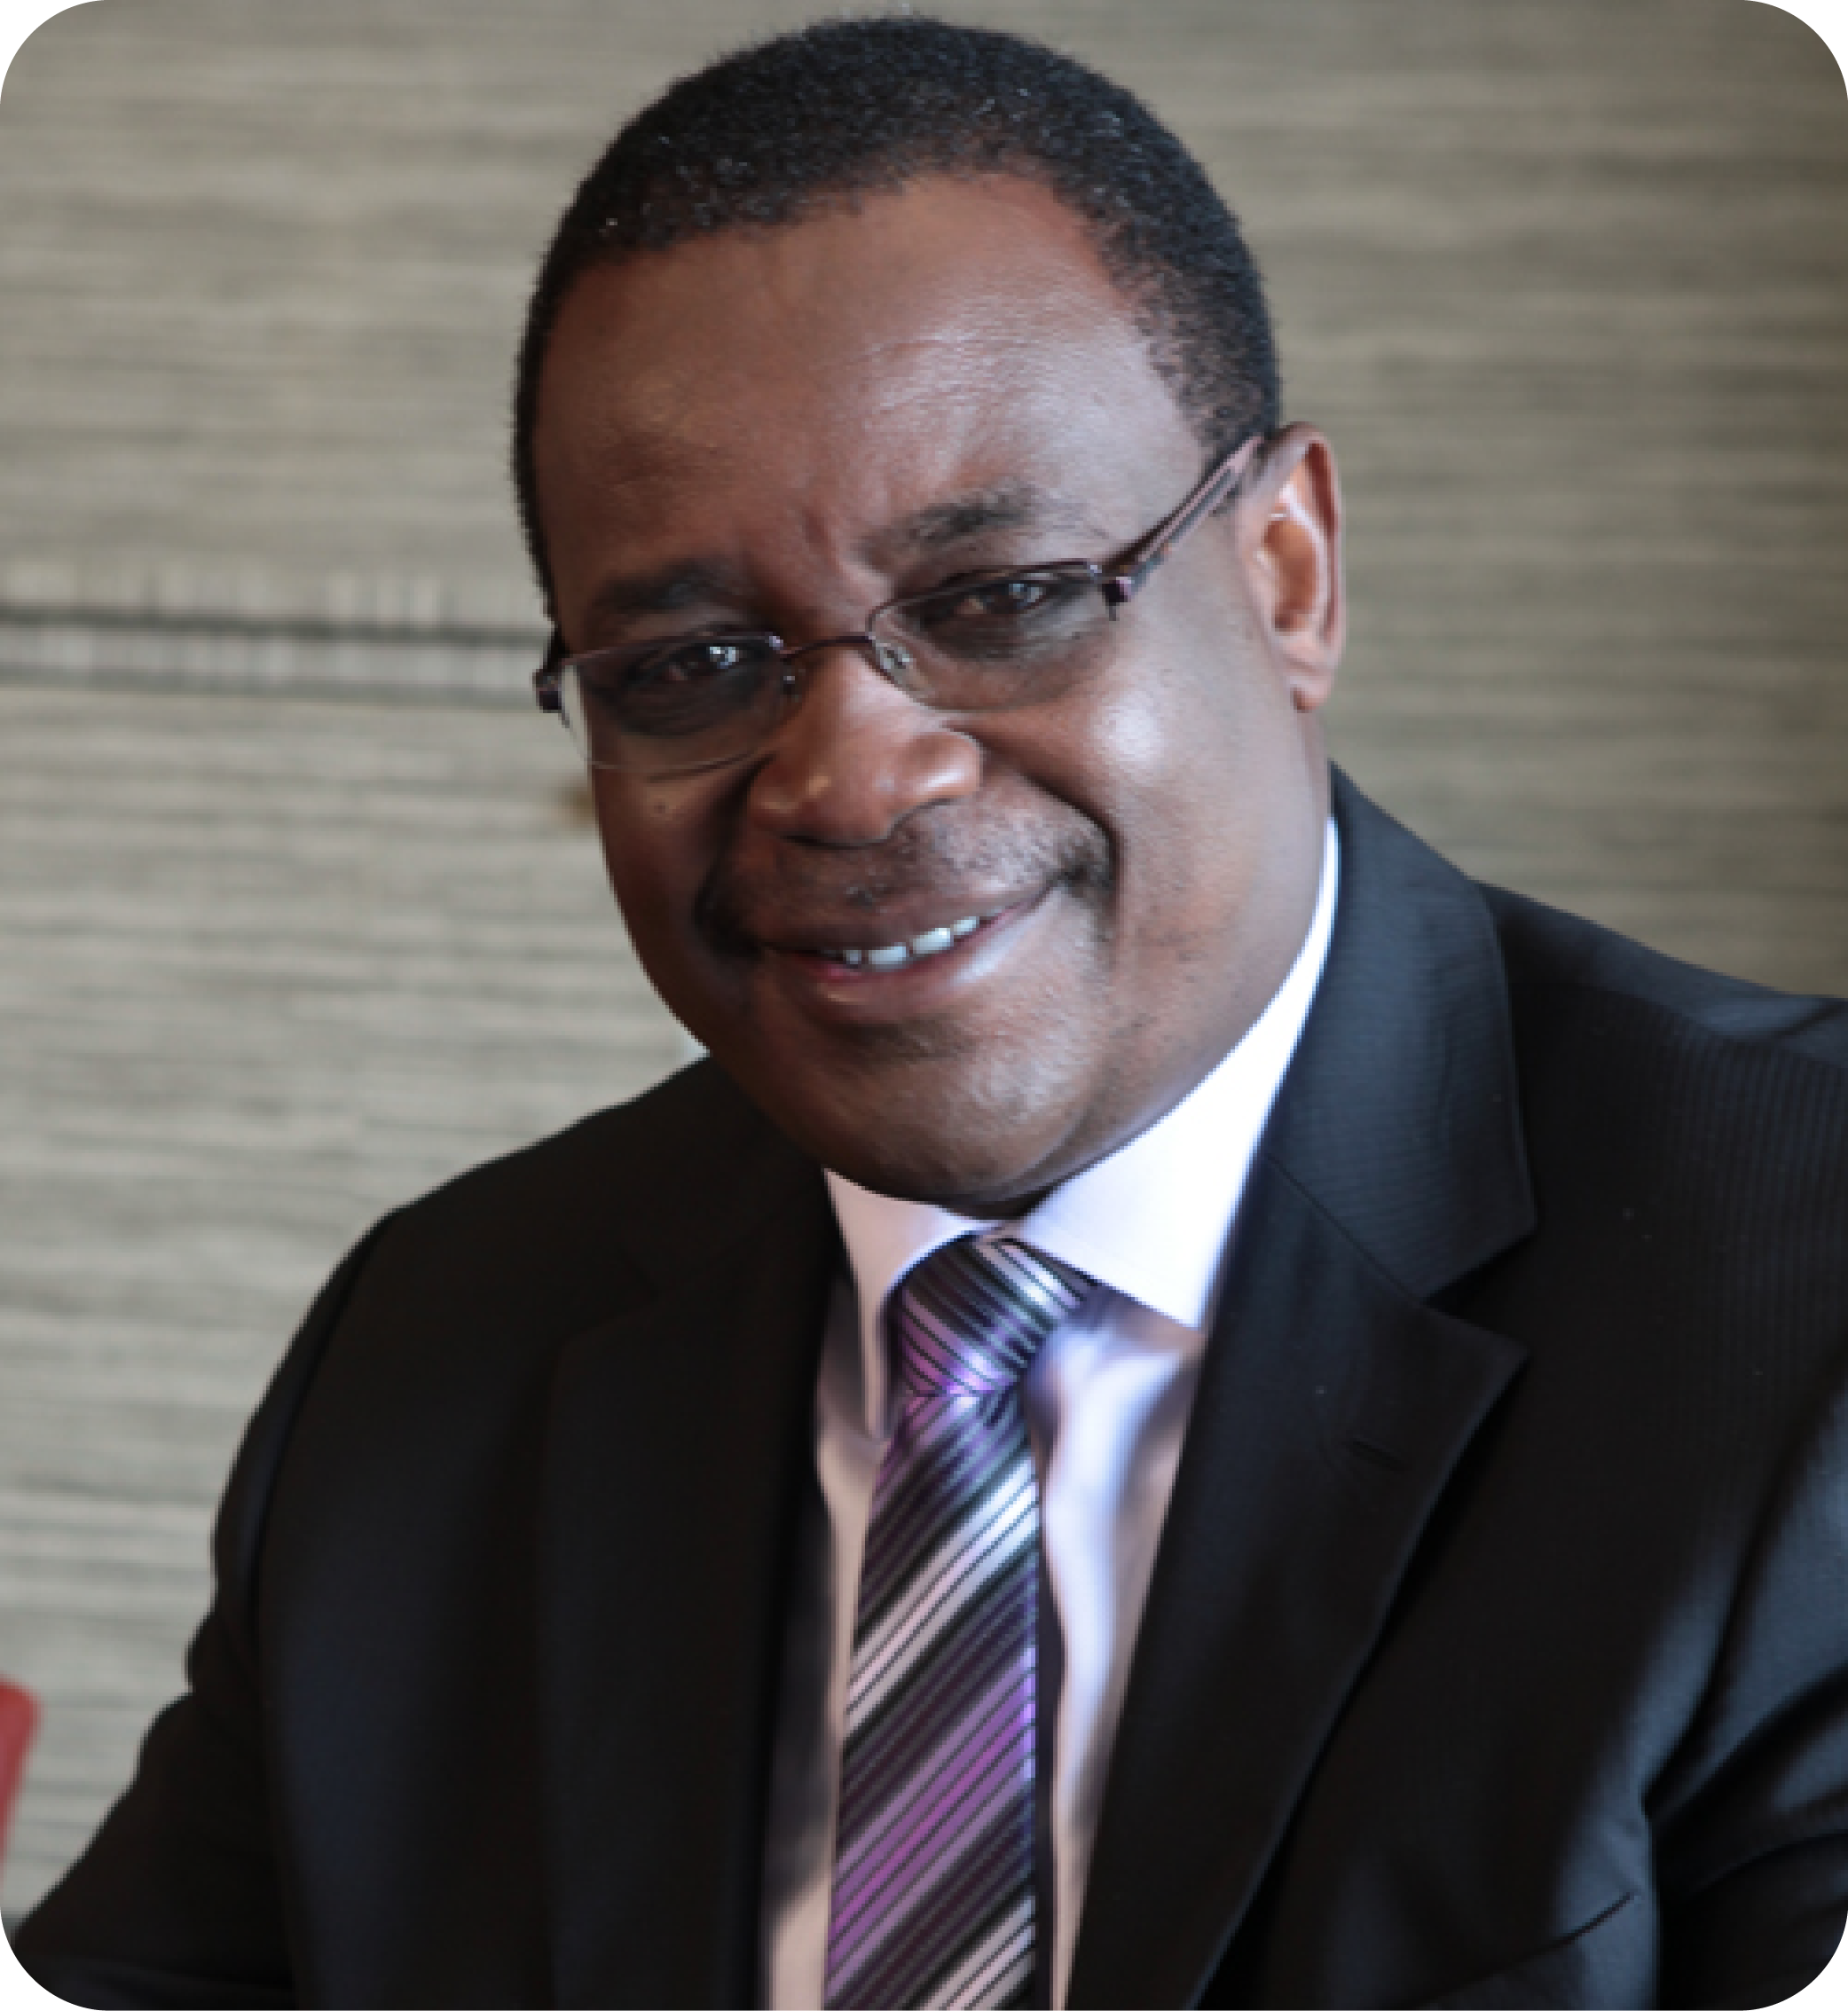 Kidero vs. Sonko: Dilemma of thinkers and doers in our politics